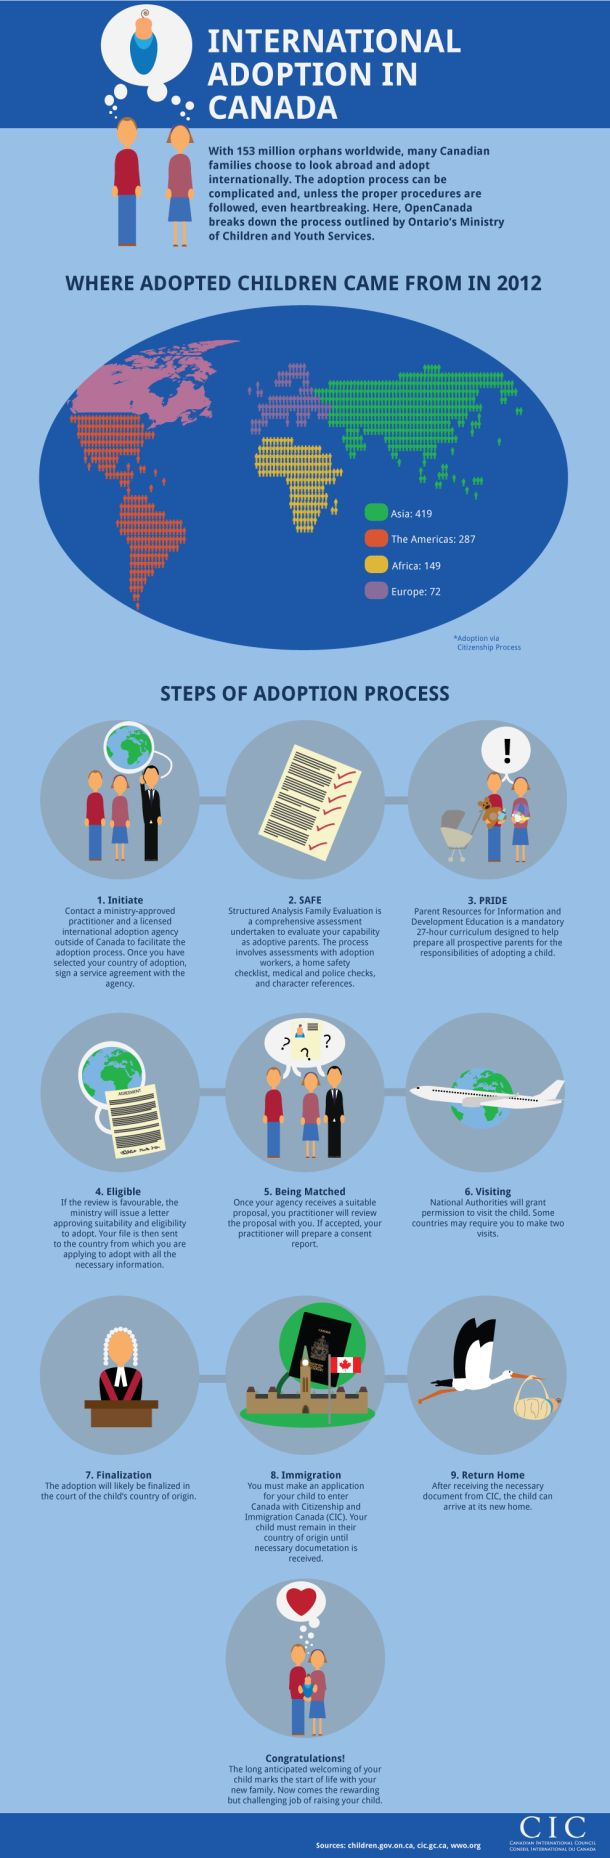 International Adoption In Canada [INFOGRAPHIC]